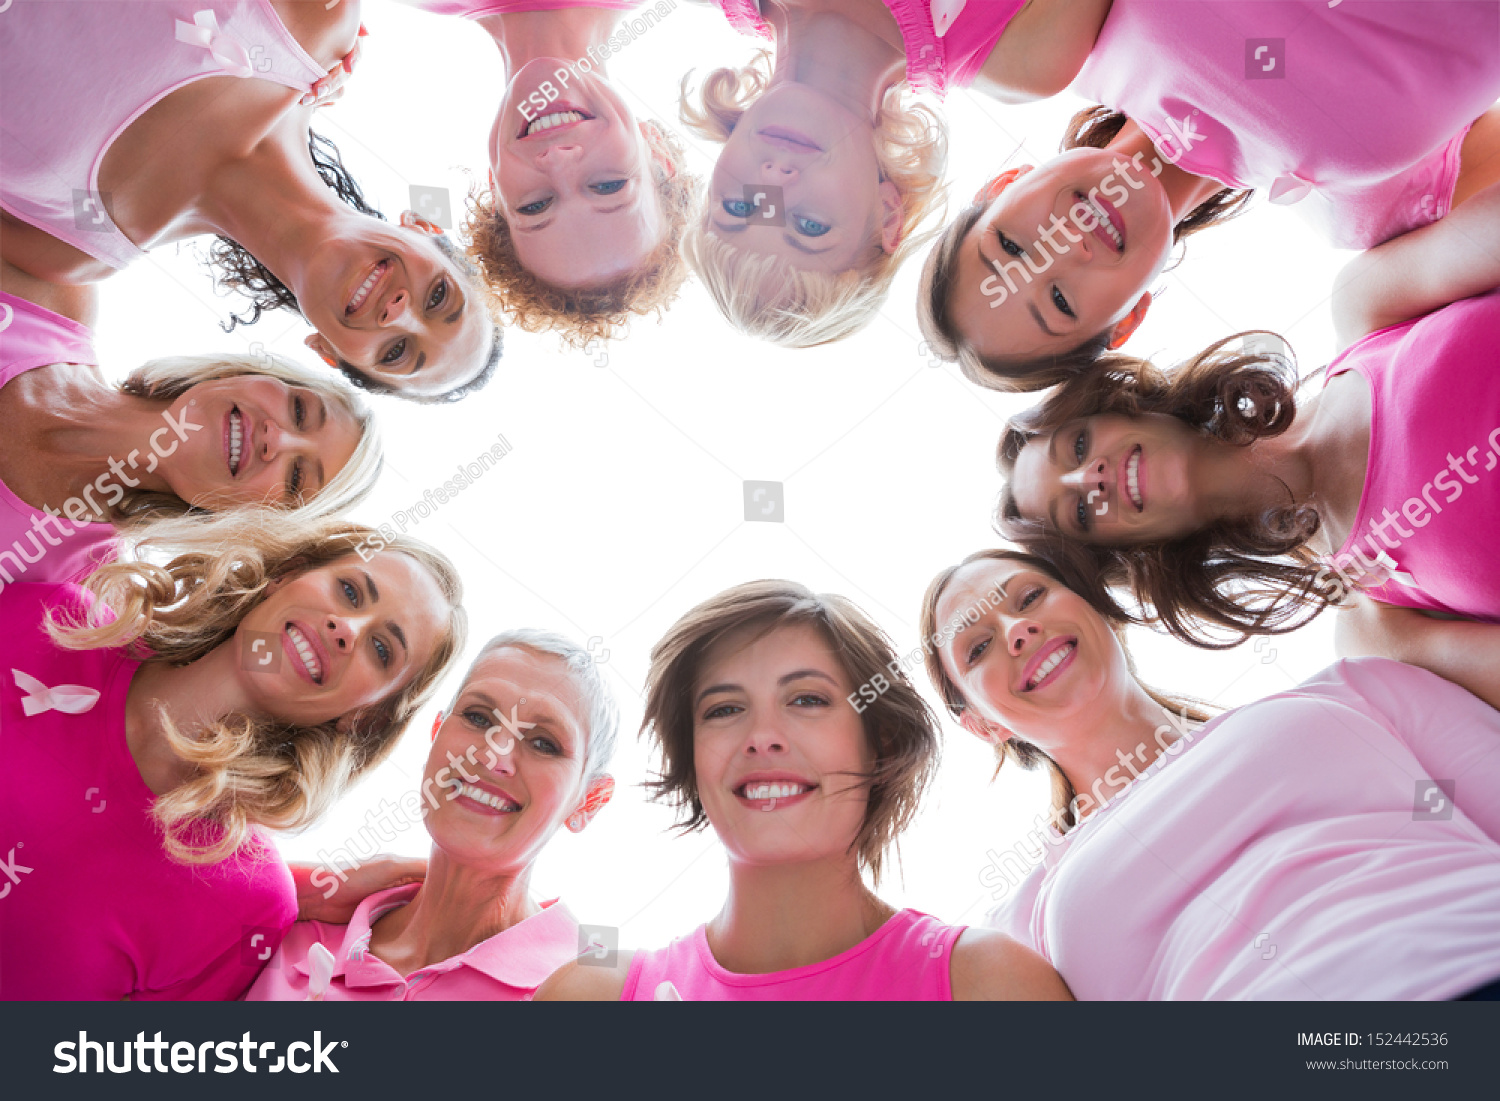 stock-photo-group-of-happy-women-in-circle-wearing-pink-for-breast-cancer-on-white-background-152442536.jpg